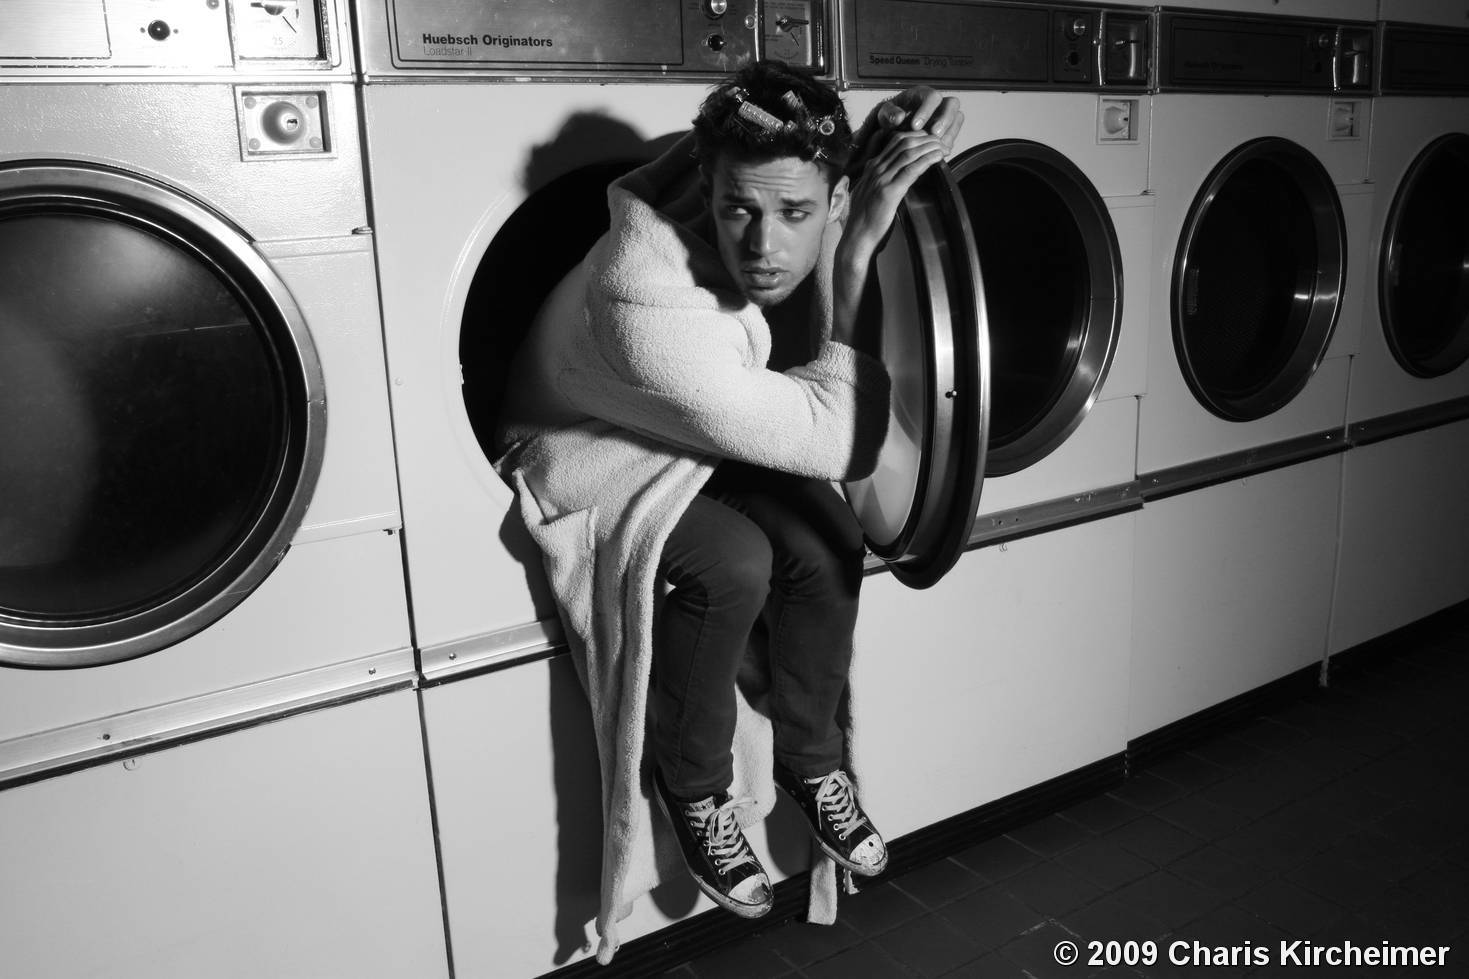 Dirty Laundry 2 Royalty Free Stock Image - Image: 1430276